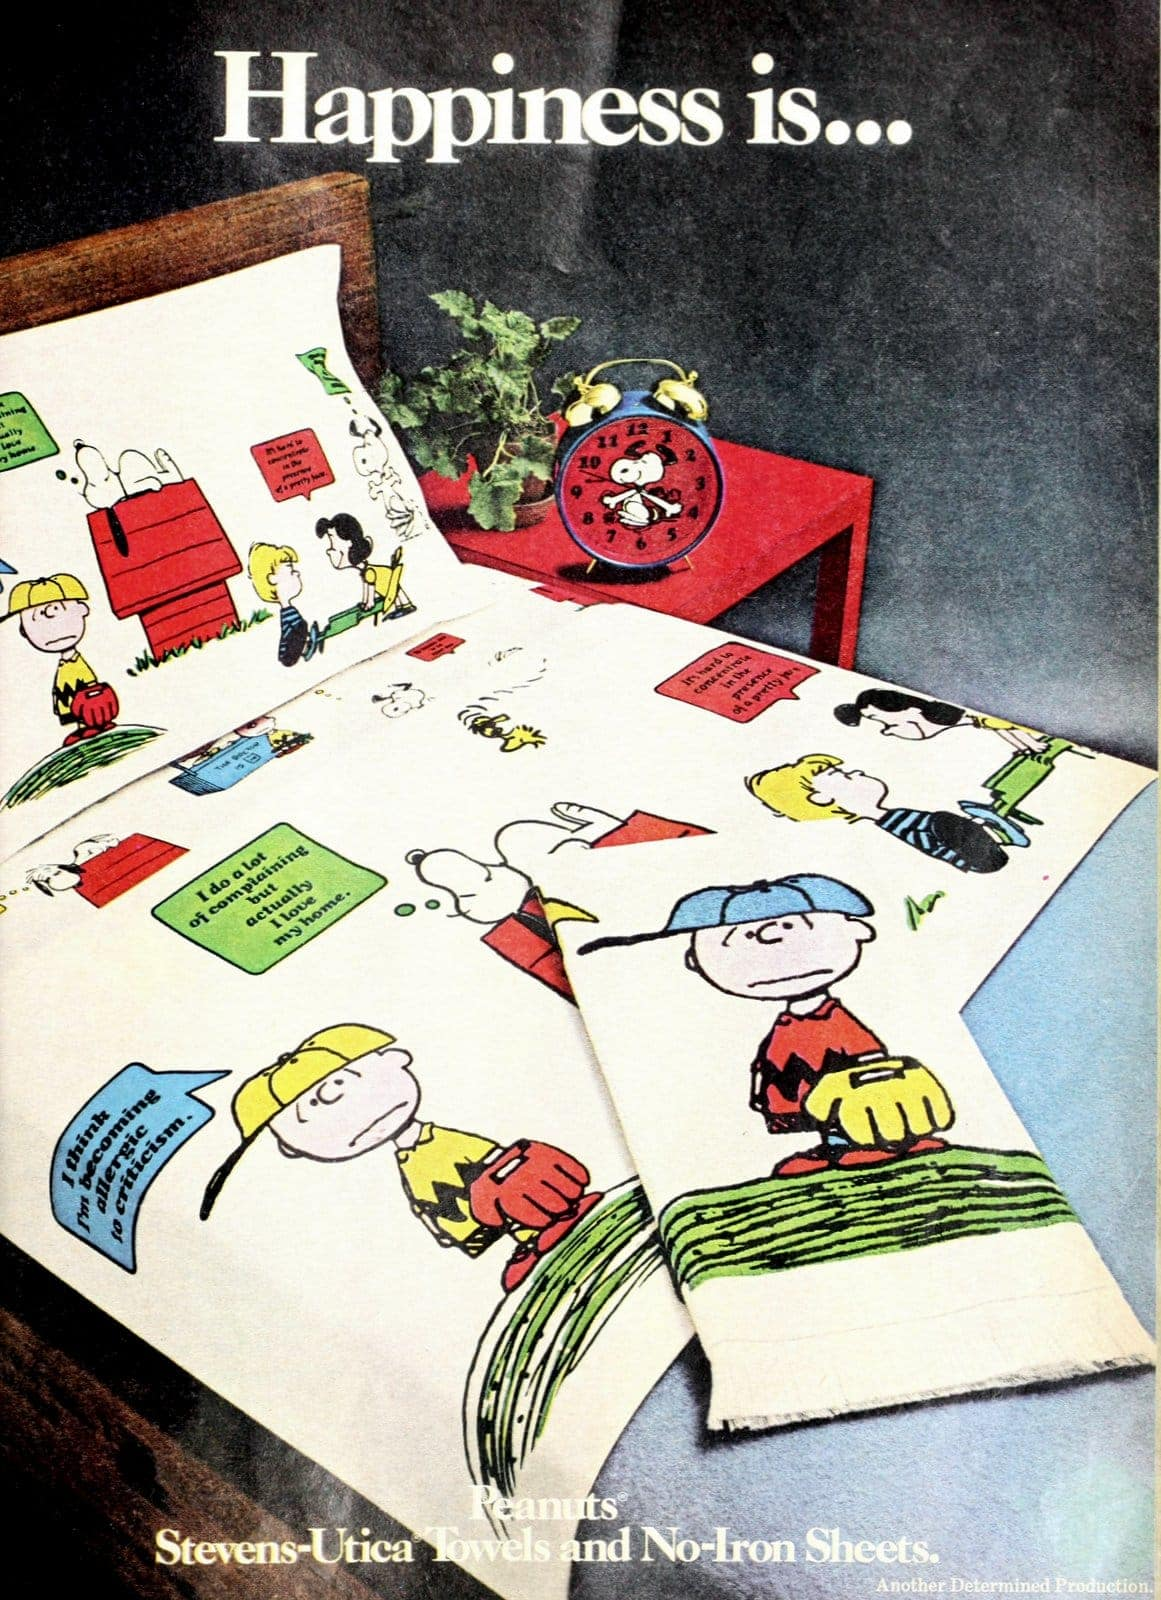 Happiness is - Vintage Snoopy Peanuts sheets (1972)